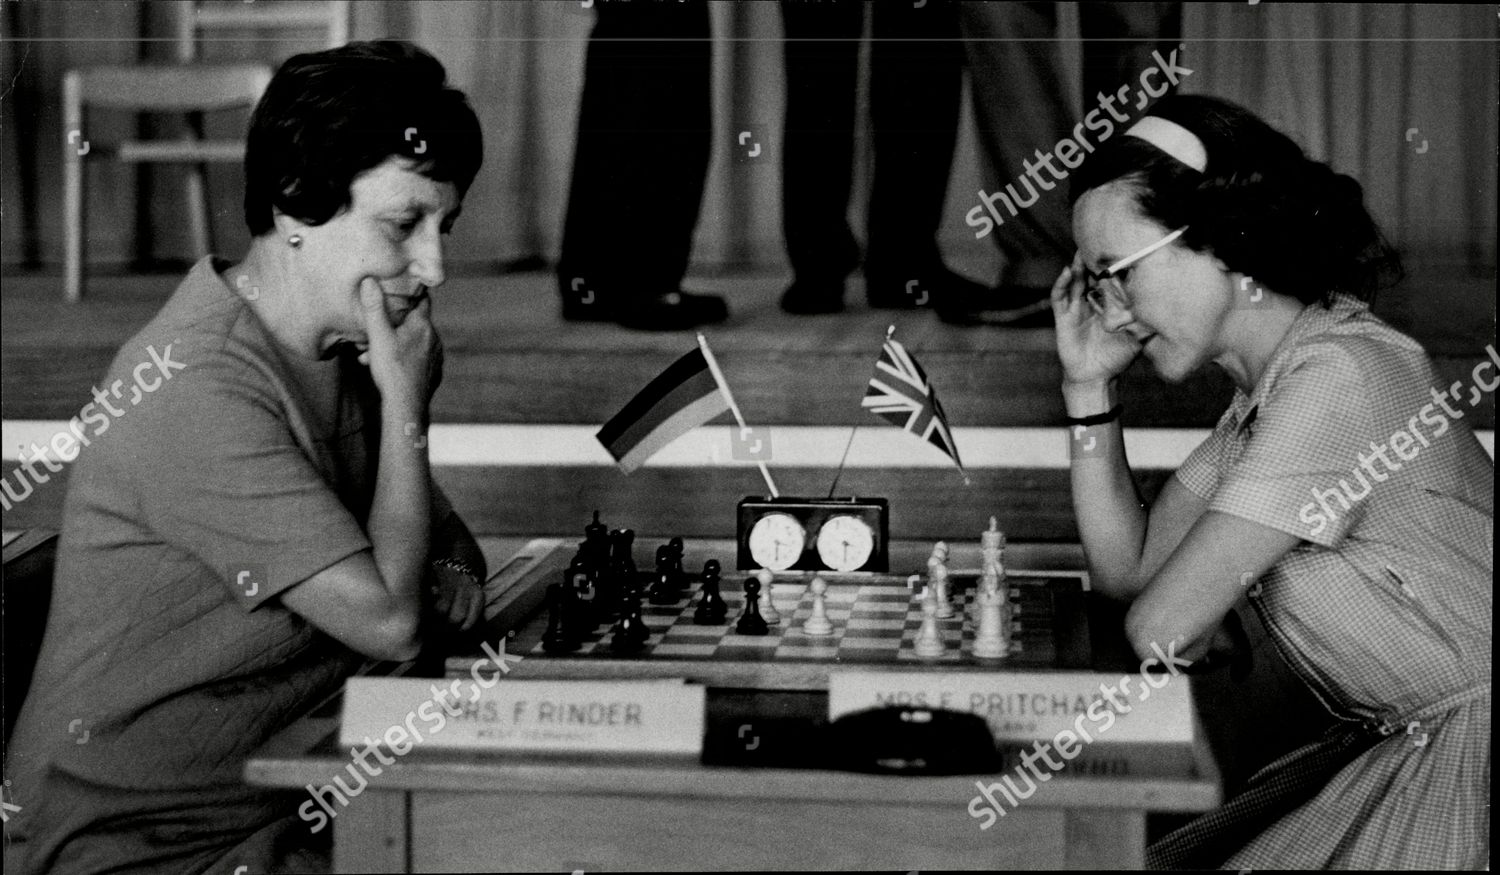 Friedl Rinder (Germany) plays Elaine Pritchard at the Havering Women's Tournament in Romford on August 25th 1967. Tournament was won by Nona Gaprindashvilli Mandatory Credit: Photo by ANL/Shutterstock (1876414a)